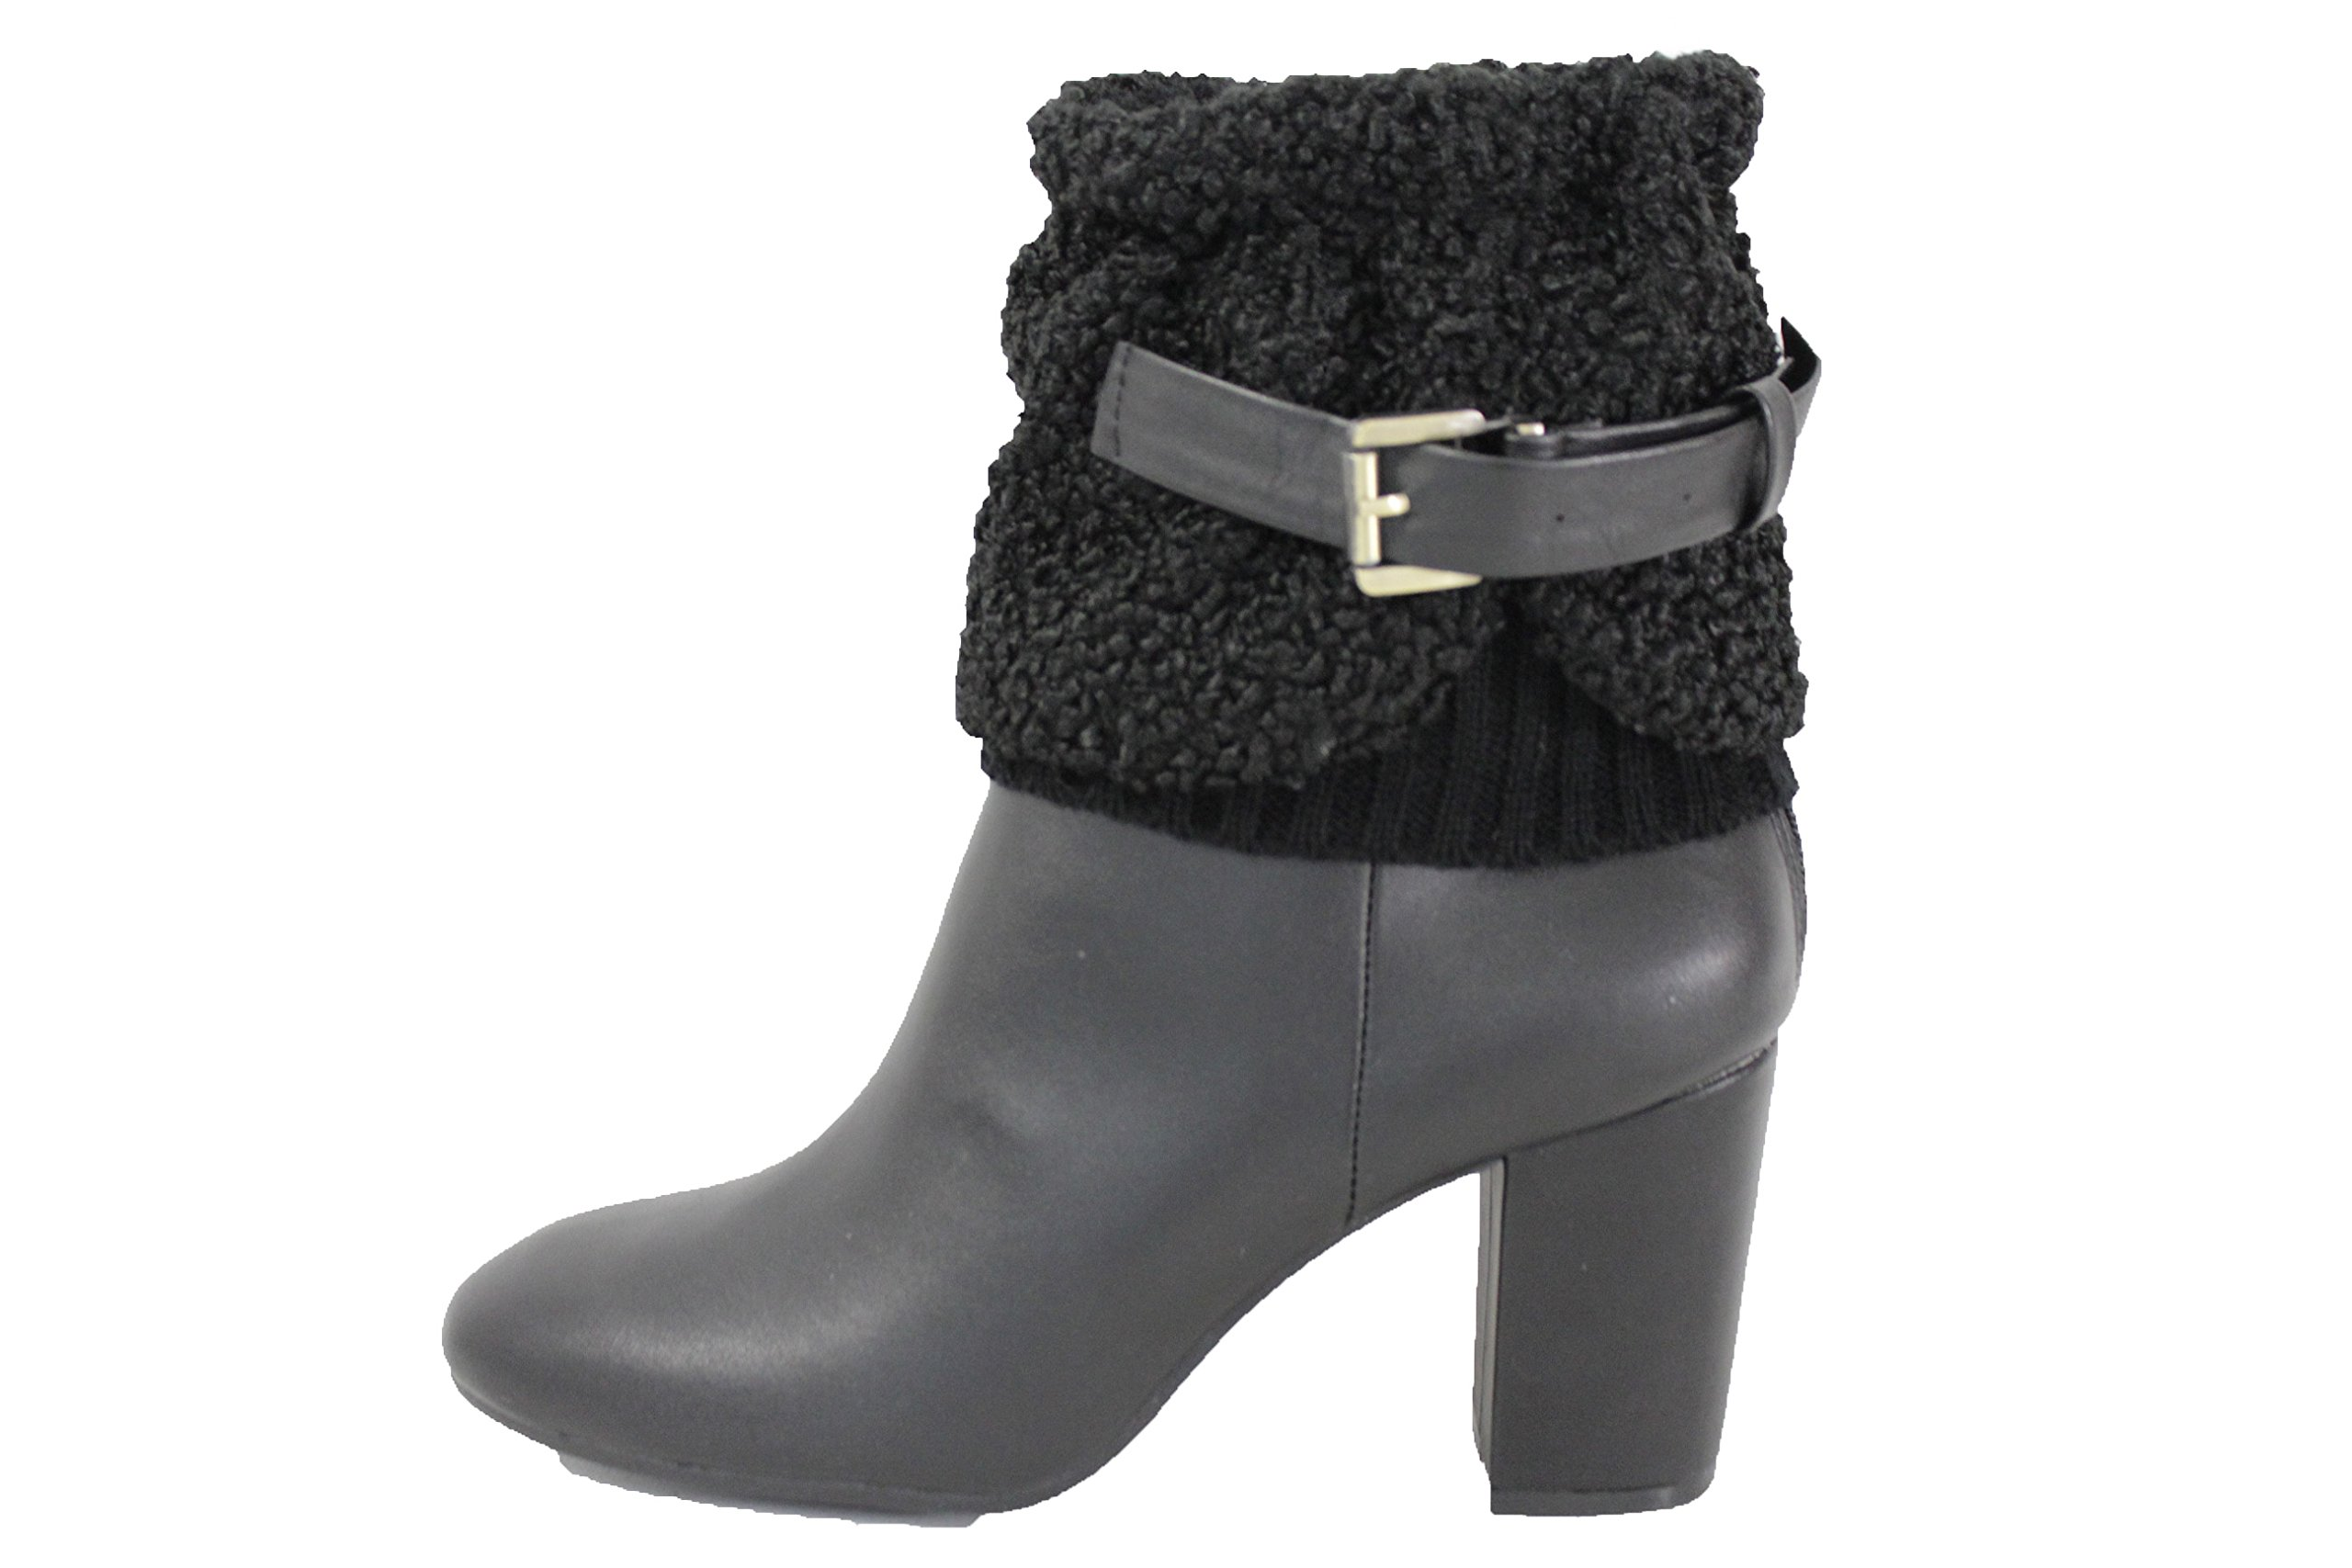 TFJ Women Fashion Boot Toppers Booties Slip Ons Black Knit Fabric Faux leather Belt Strap